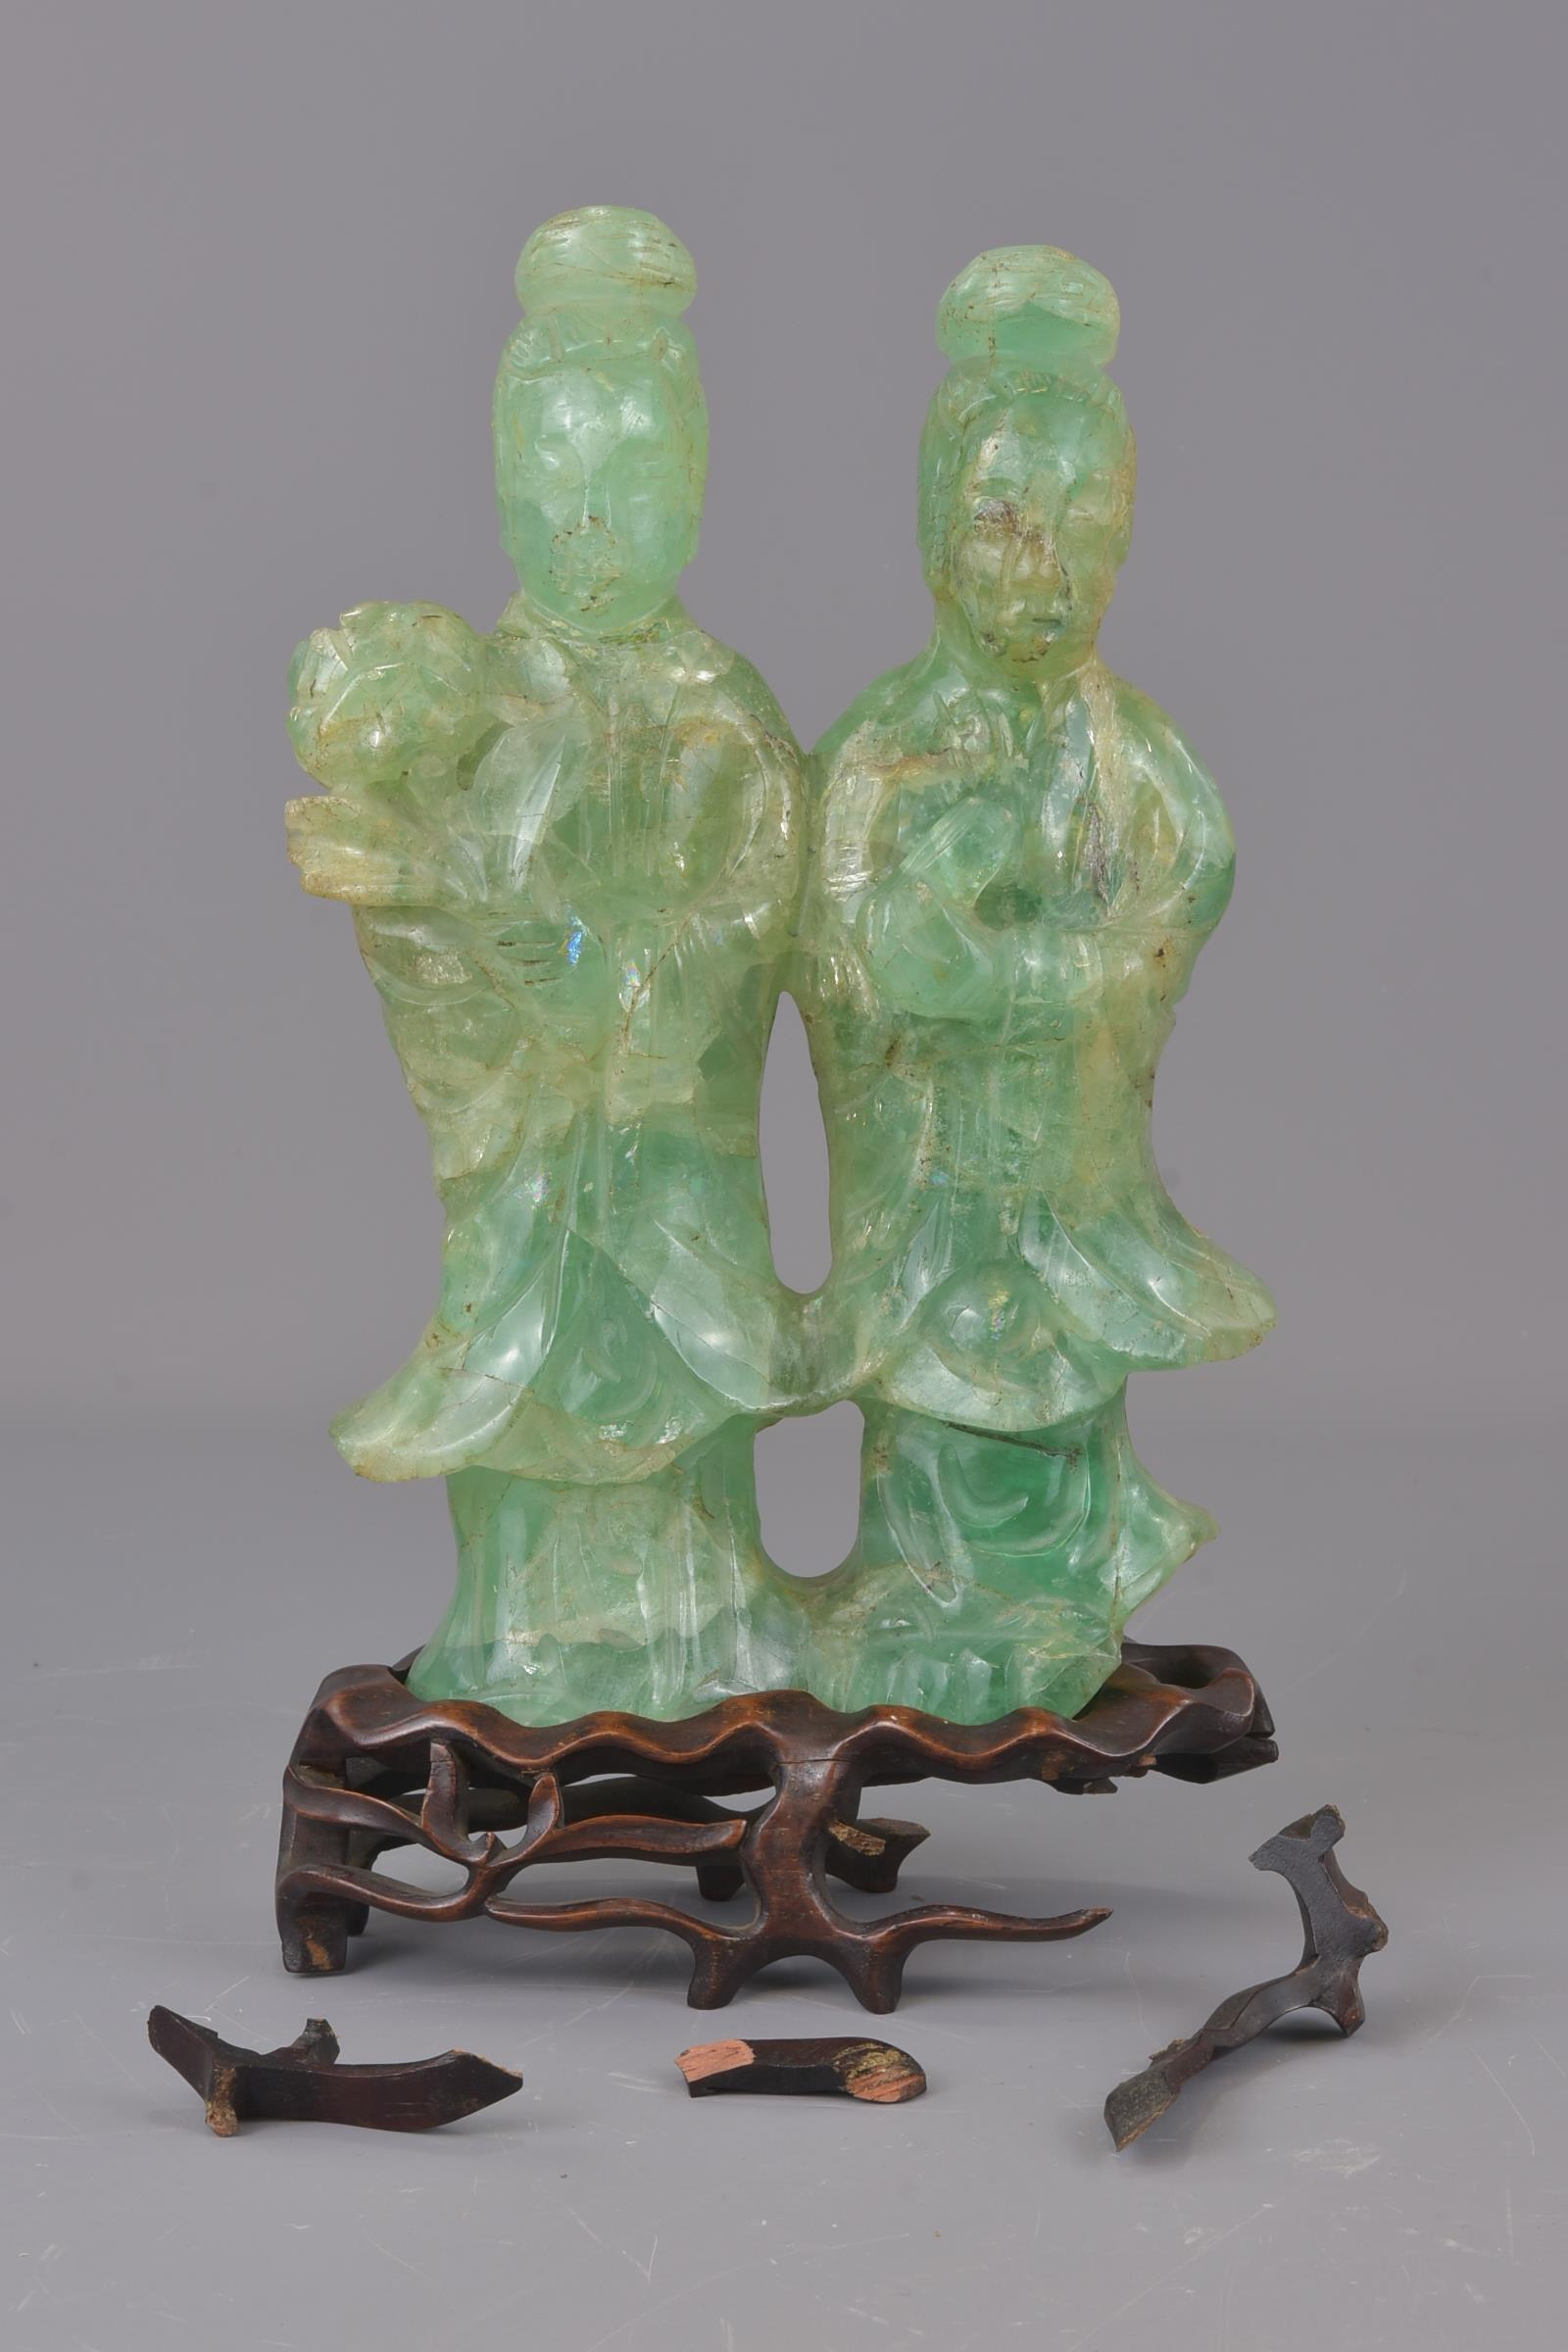 Lot 45 - A Chinese green glass censer and cover together with green stone carving of Guanyin figures on a woo